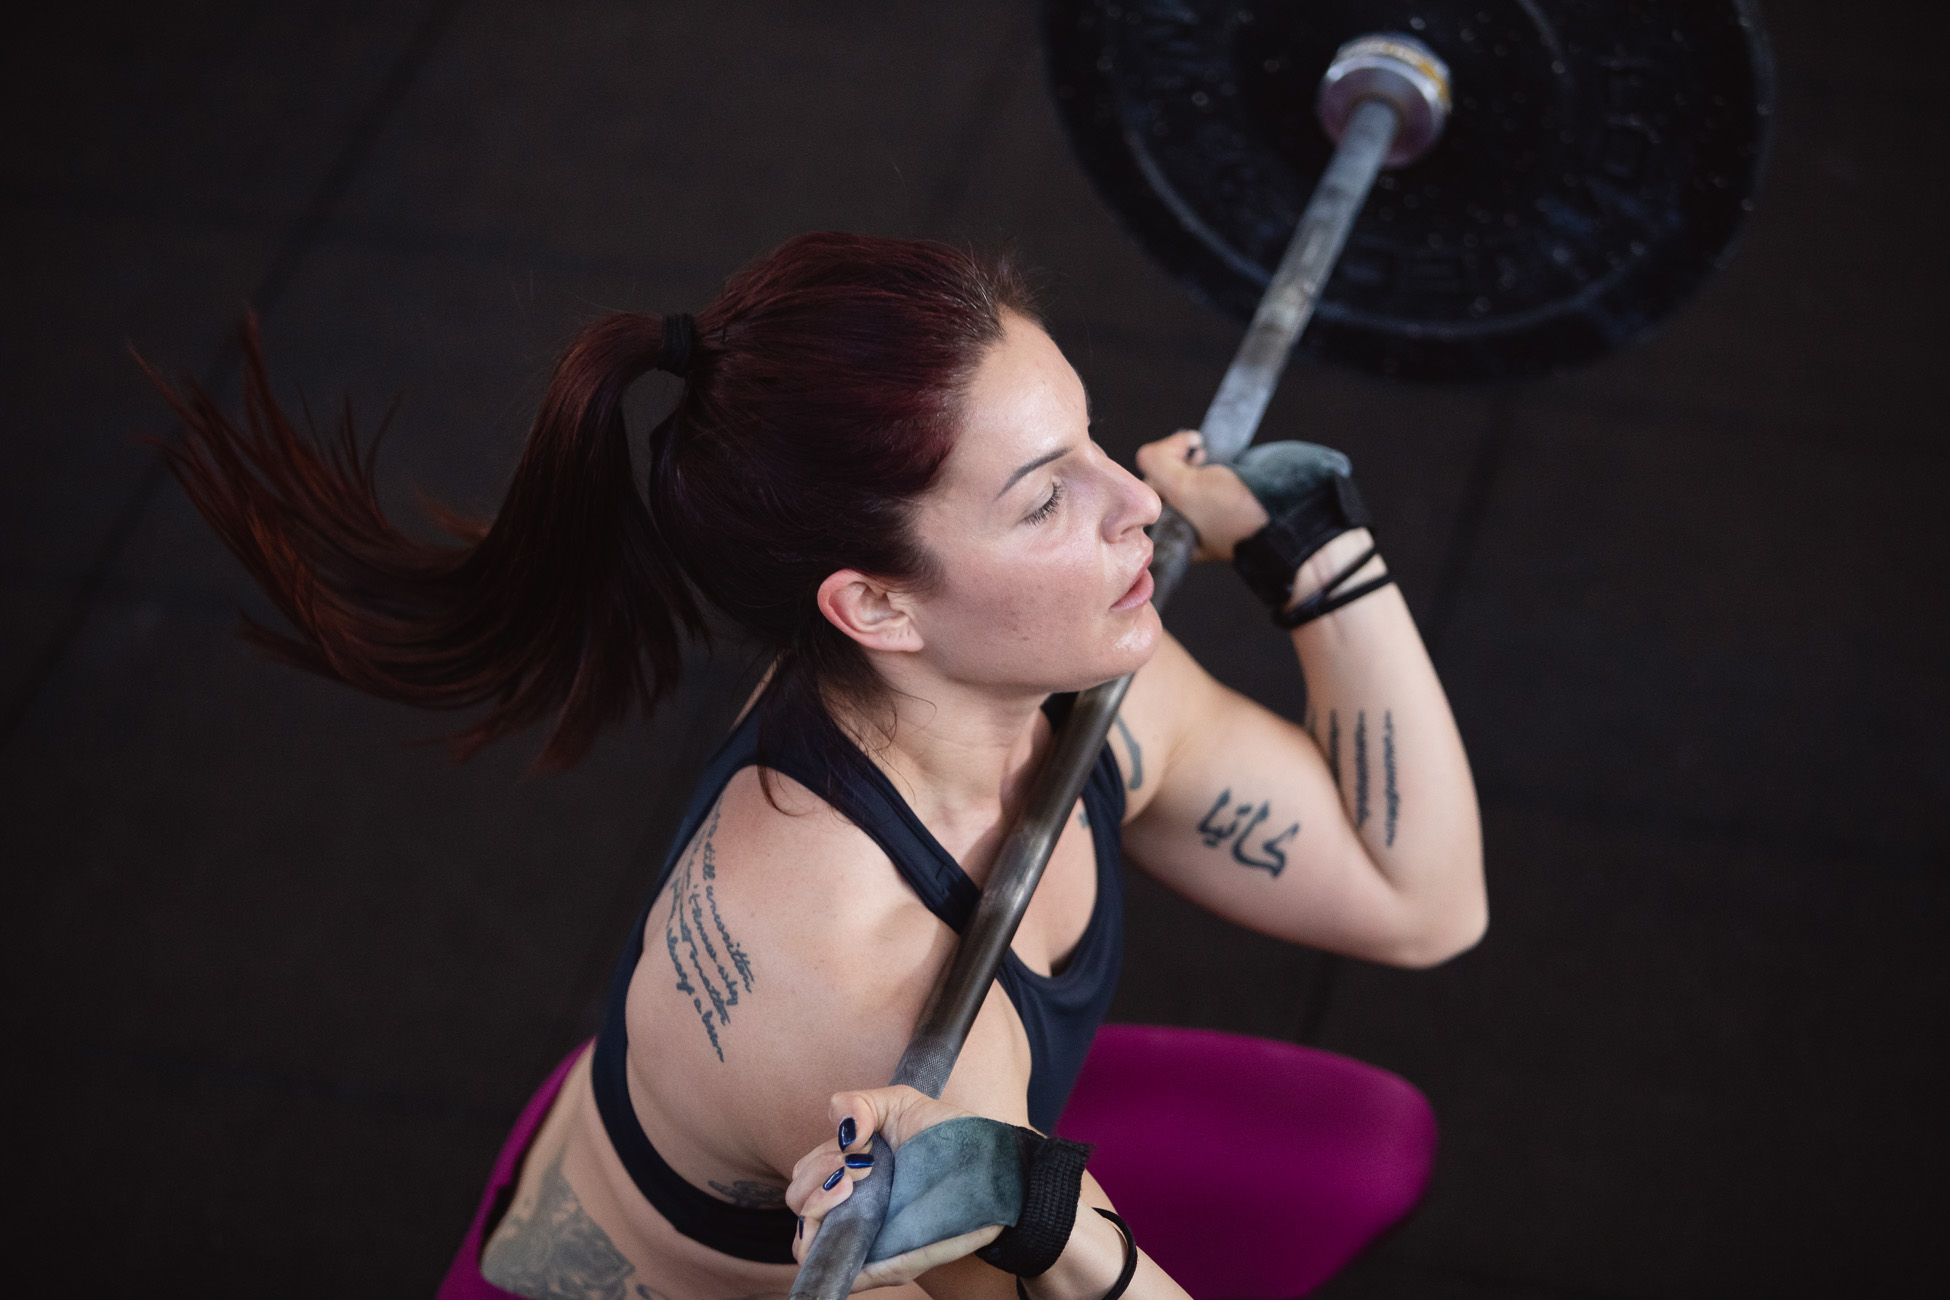 crossfit-games-open-fitness-sport-athlete-photography-002.jpg